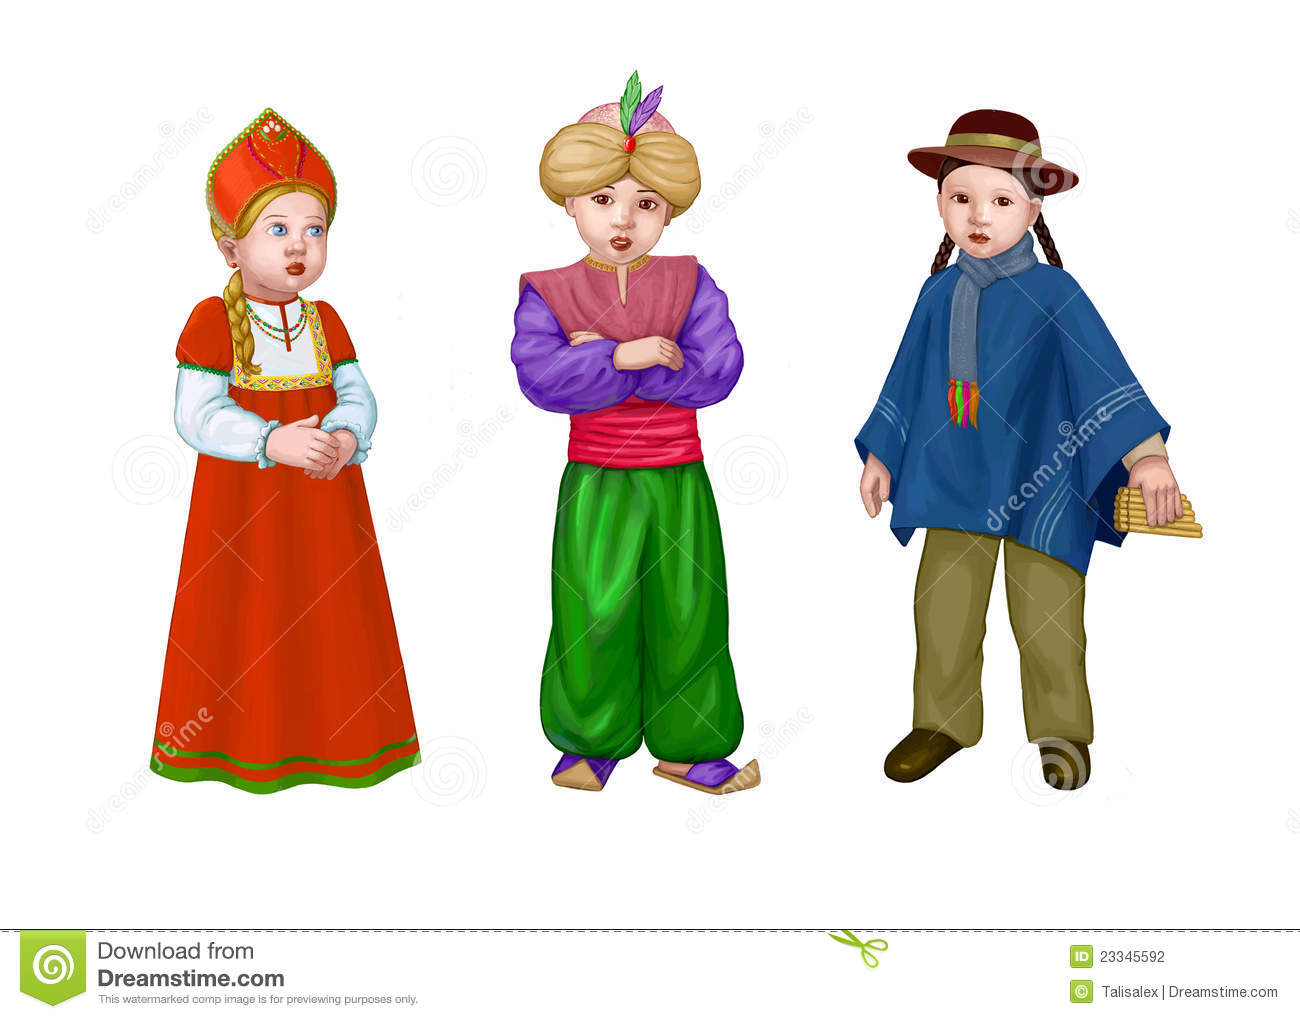 Traditional costumes clipart svg royalty free library National costumes clipart - ClipartFest svg royalty free library